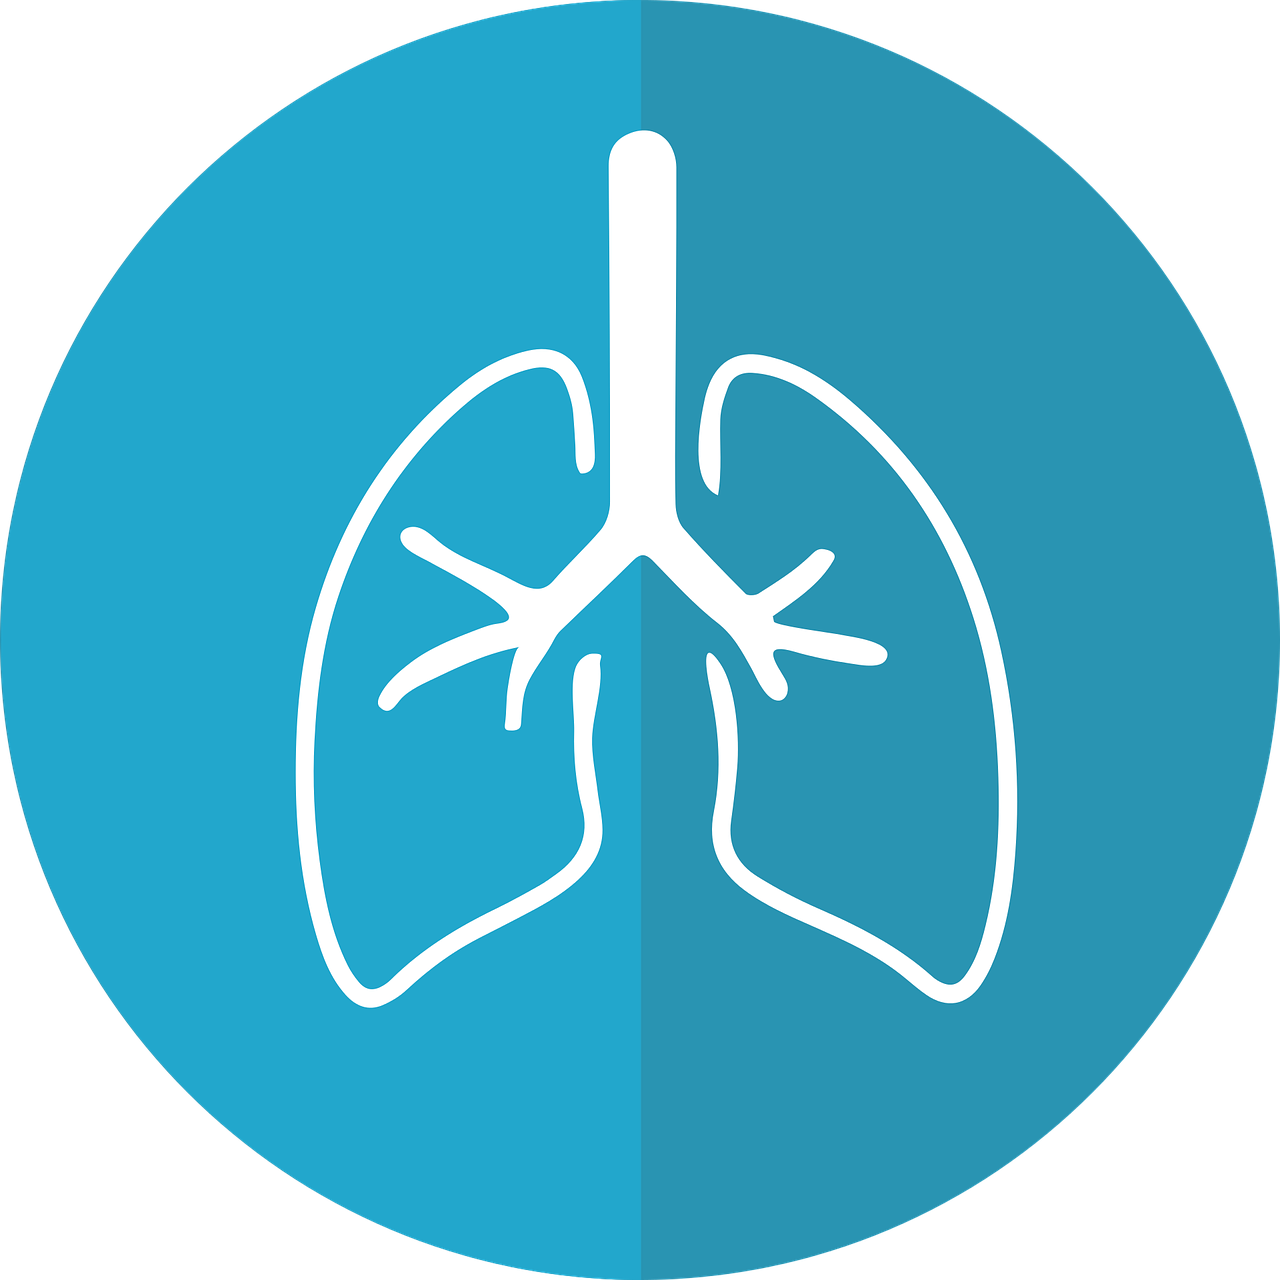 lungs, lung icon, respiration-2803208